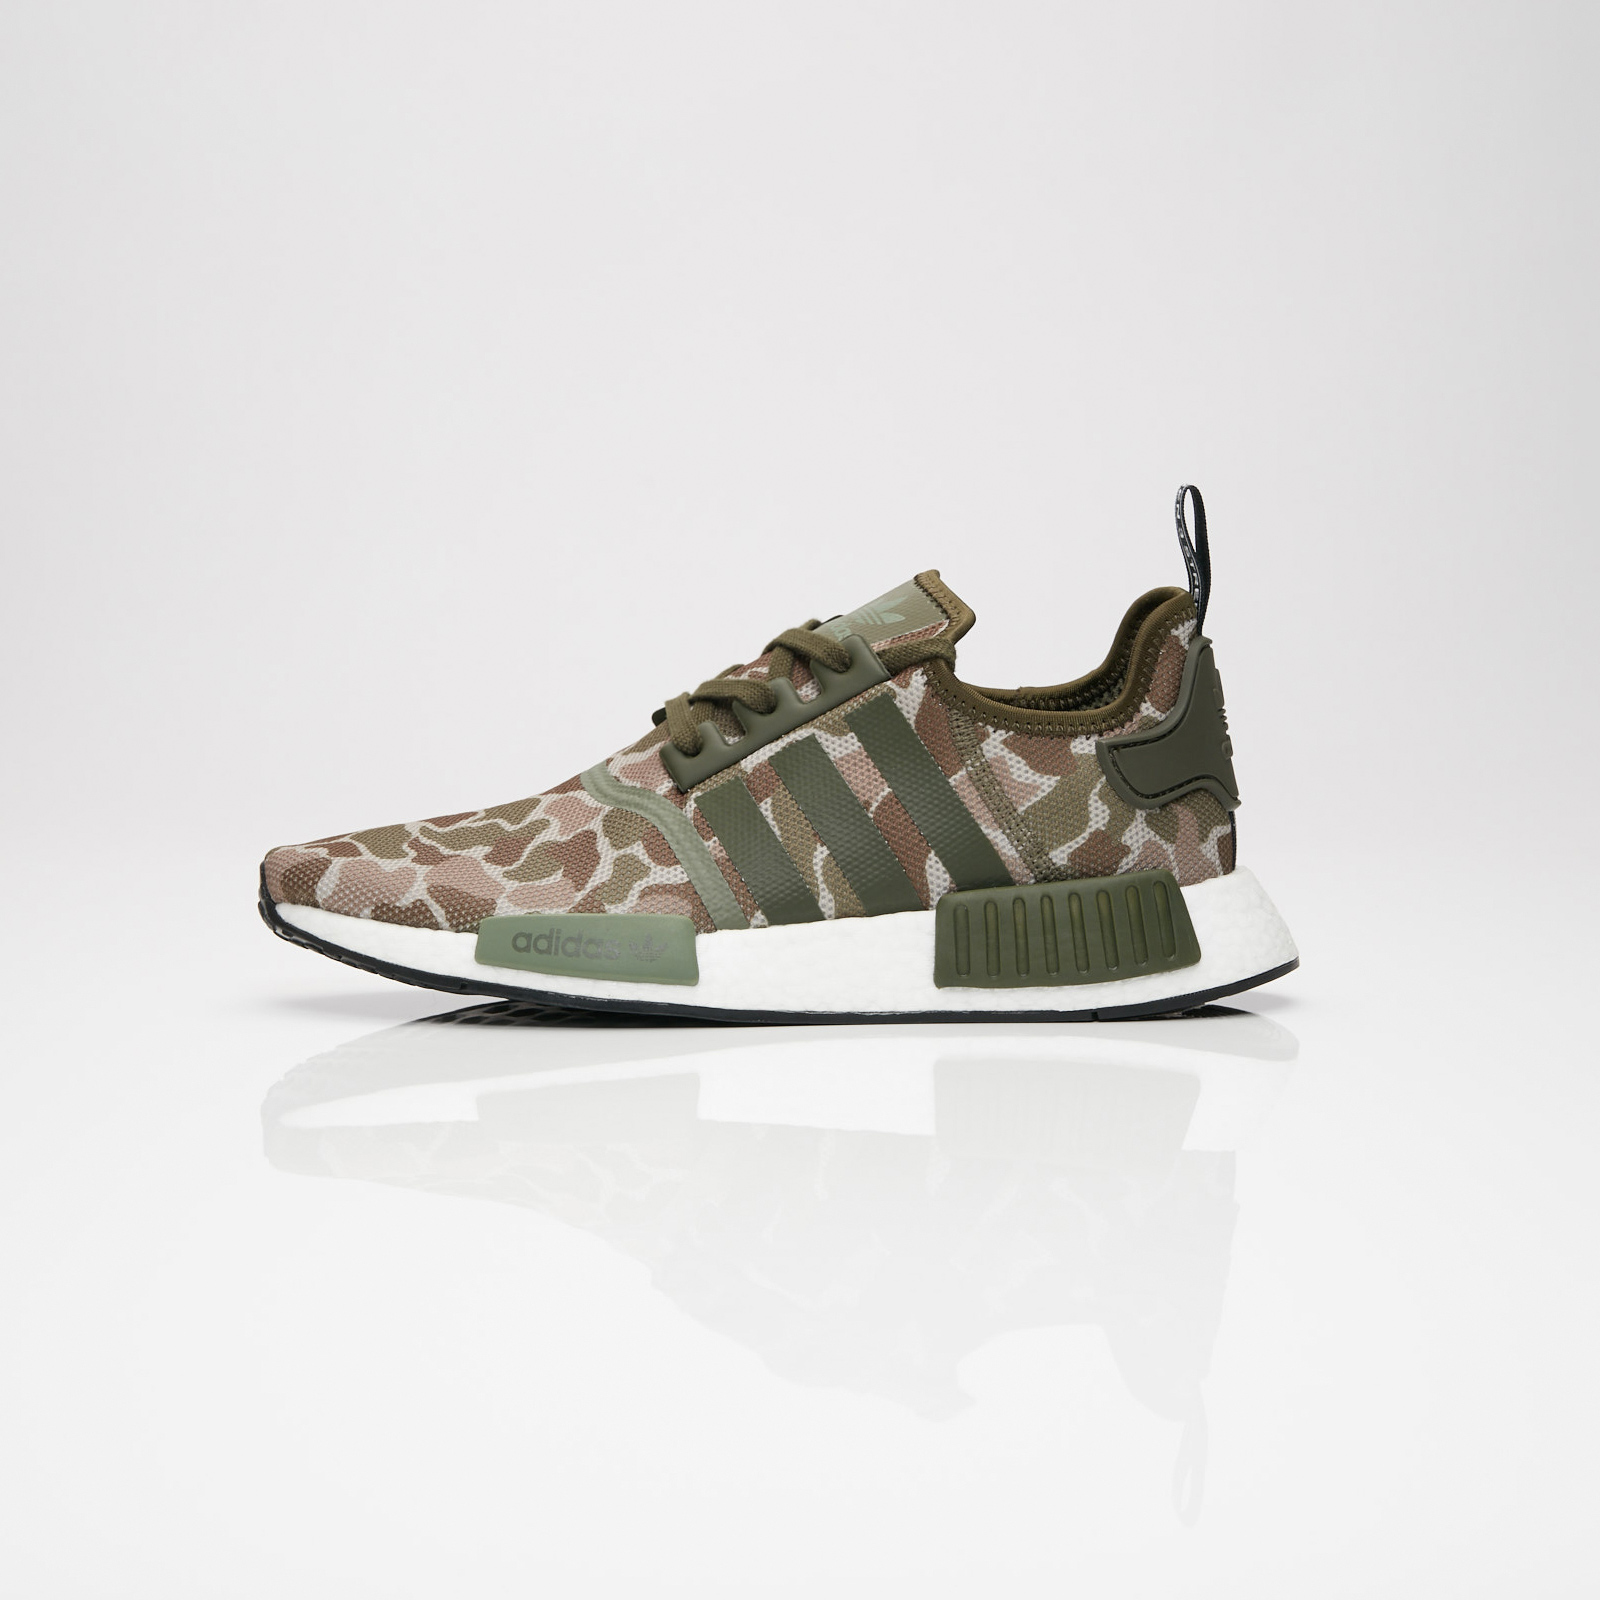 847f50a17 adidas NMD R1 - D96617 - Sneakersnstuff I Sneakers   Streetwear ...